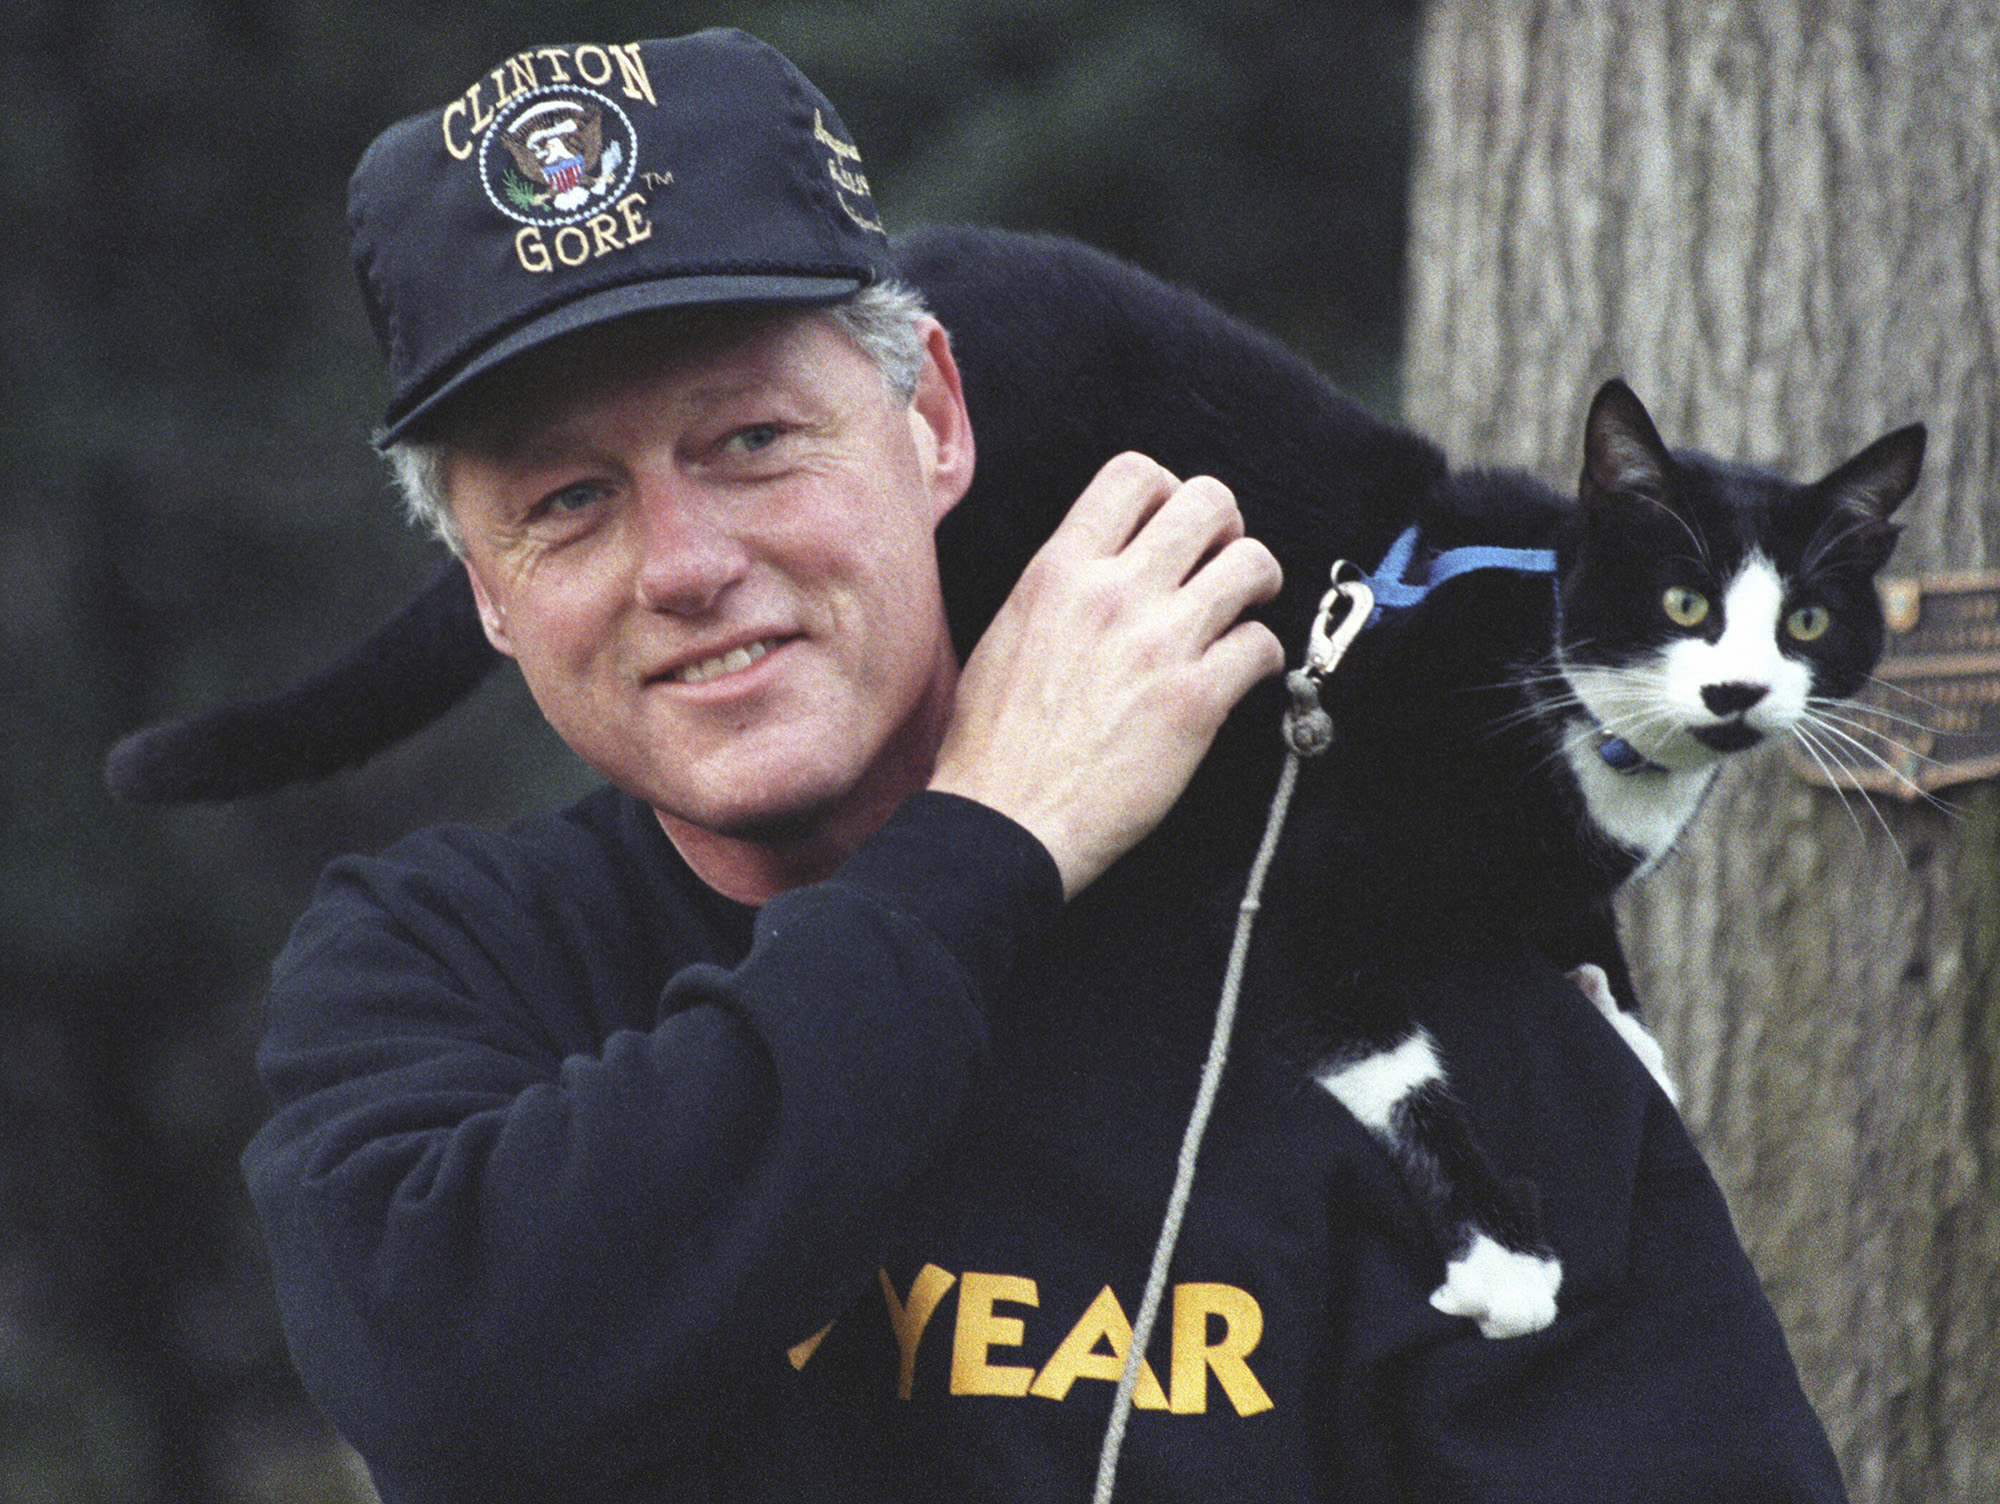 President Bill Clinton, wearing pullover sweatshirt and a Clinton-Gore administration baseball hat, smiles while taking a walk on the White House grounds with the First Pet, Socks the Cat, with black fur, white face, and blue collar, perched on his shoulders, with a plaque mounted to a tree behind them, Washington, District of Columbia, December 20, 1993. Courtesy National Archives. КРЕДИТ Smith Collection/Gado/Getty Image